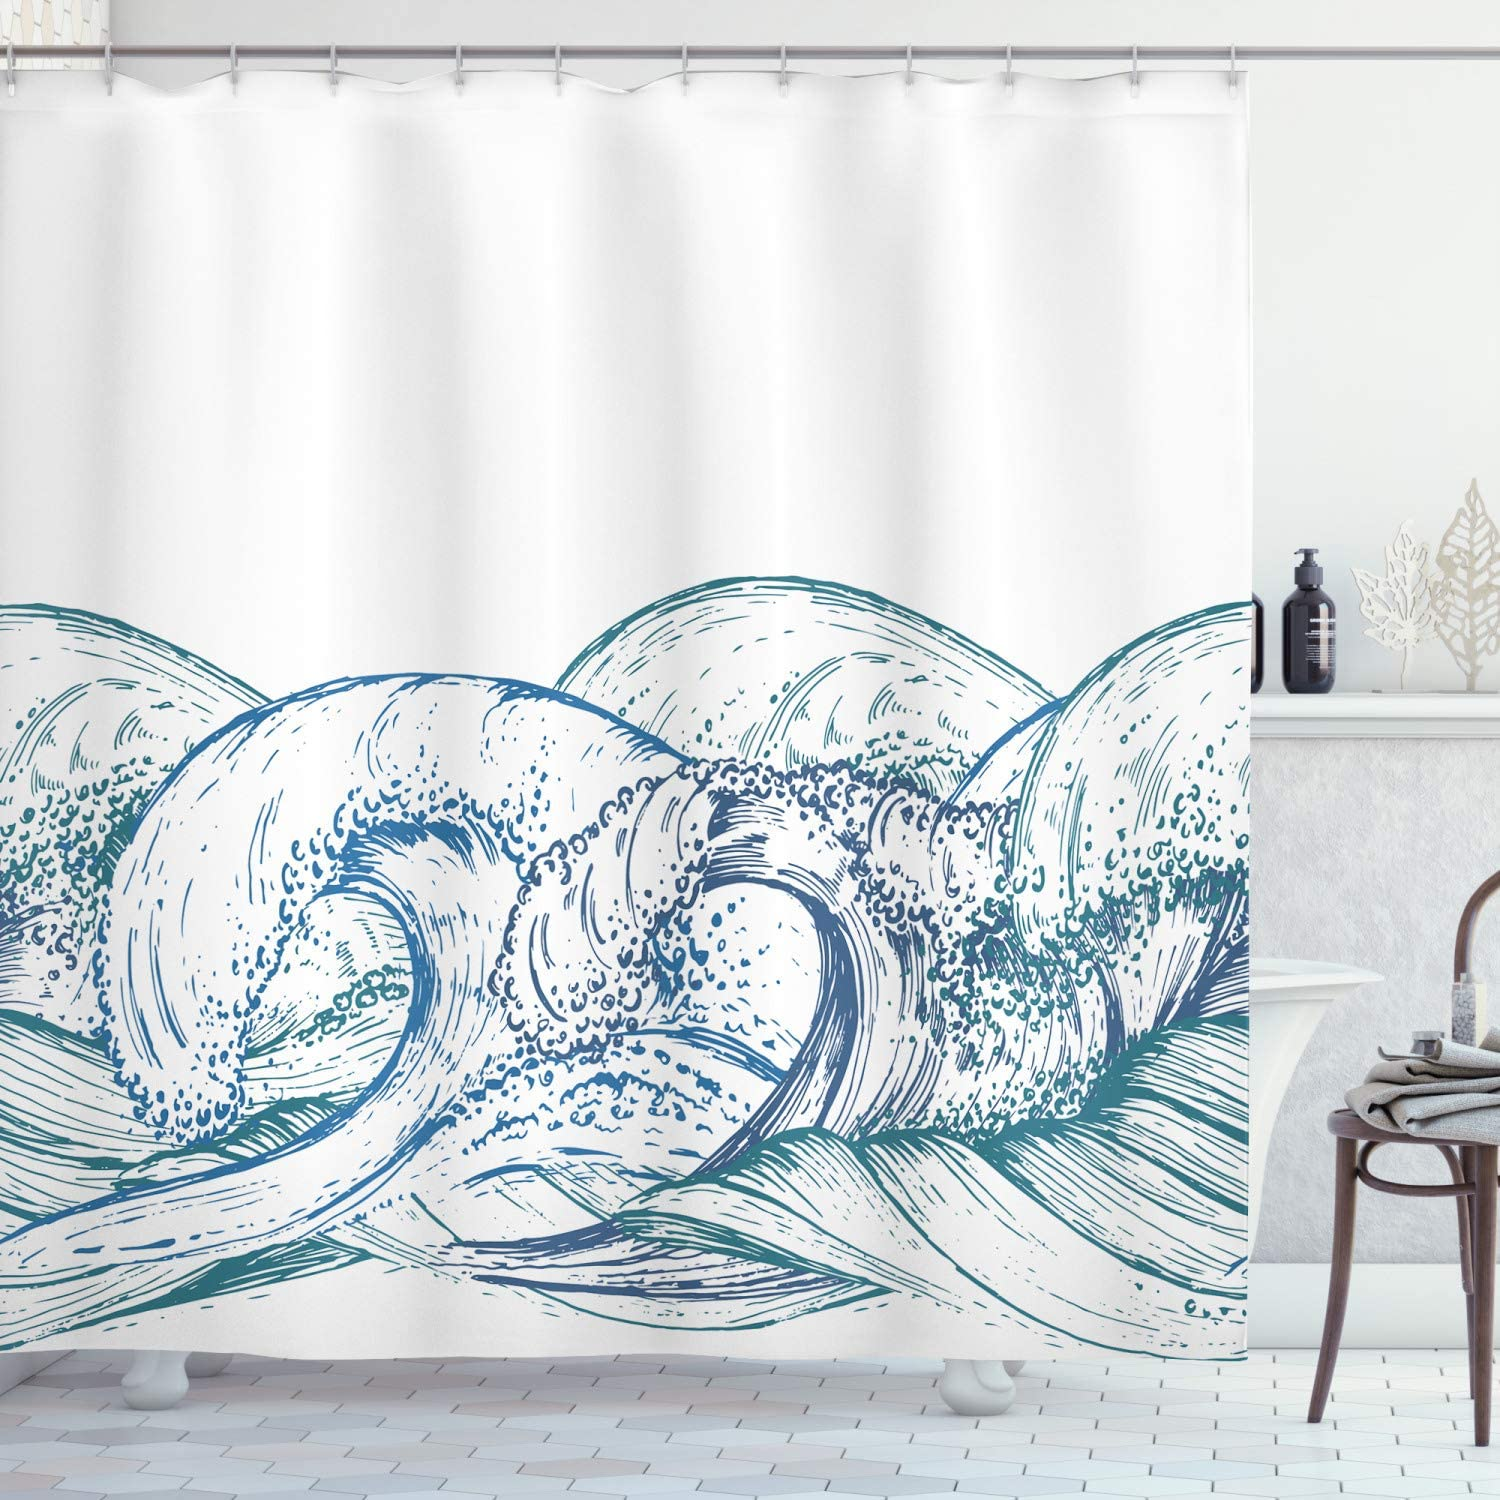 Nautical Great Waves Hand Drawn Bathroom Fabric Shower Curtain /& 12 Hooks 71*71/""